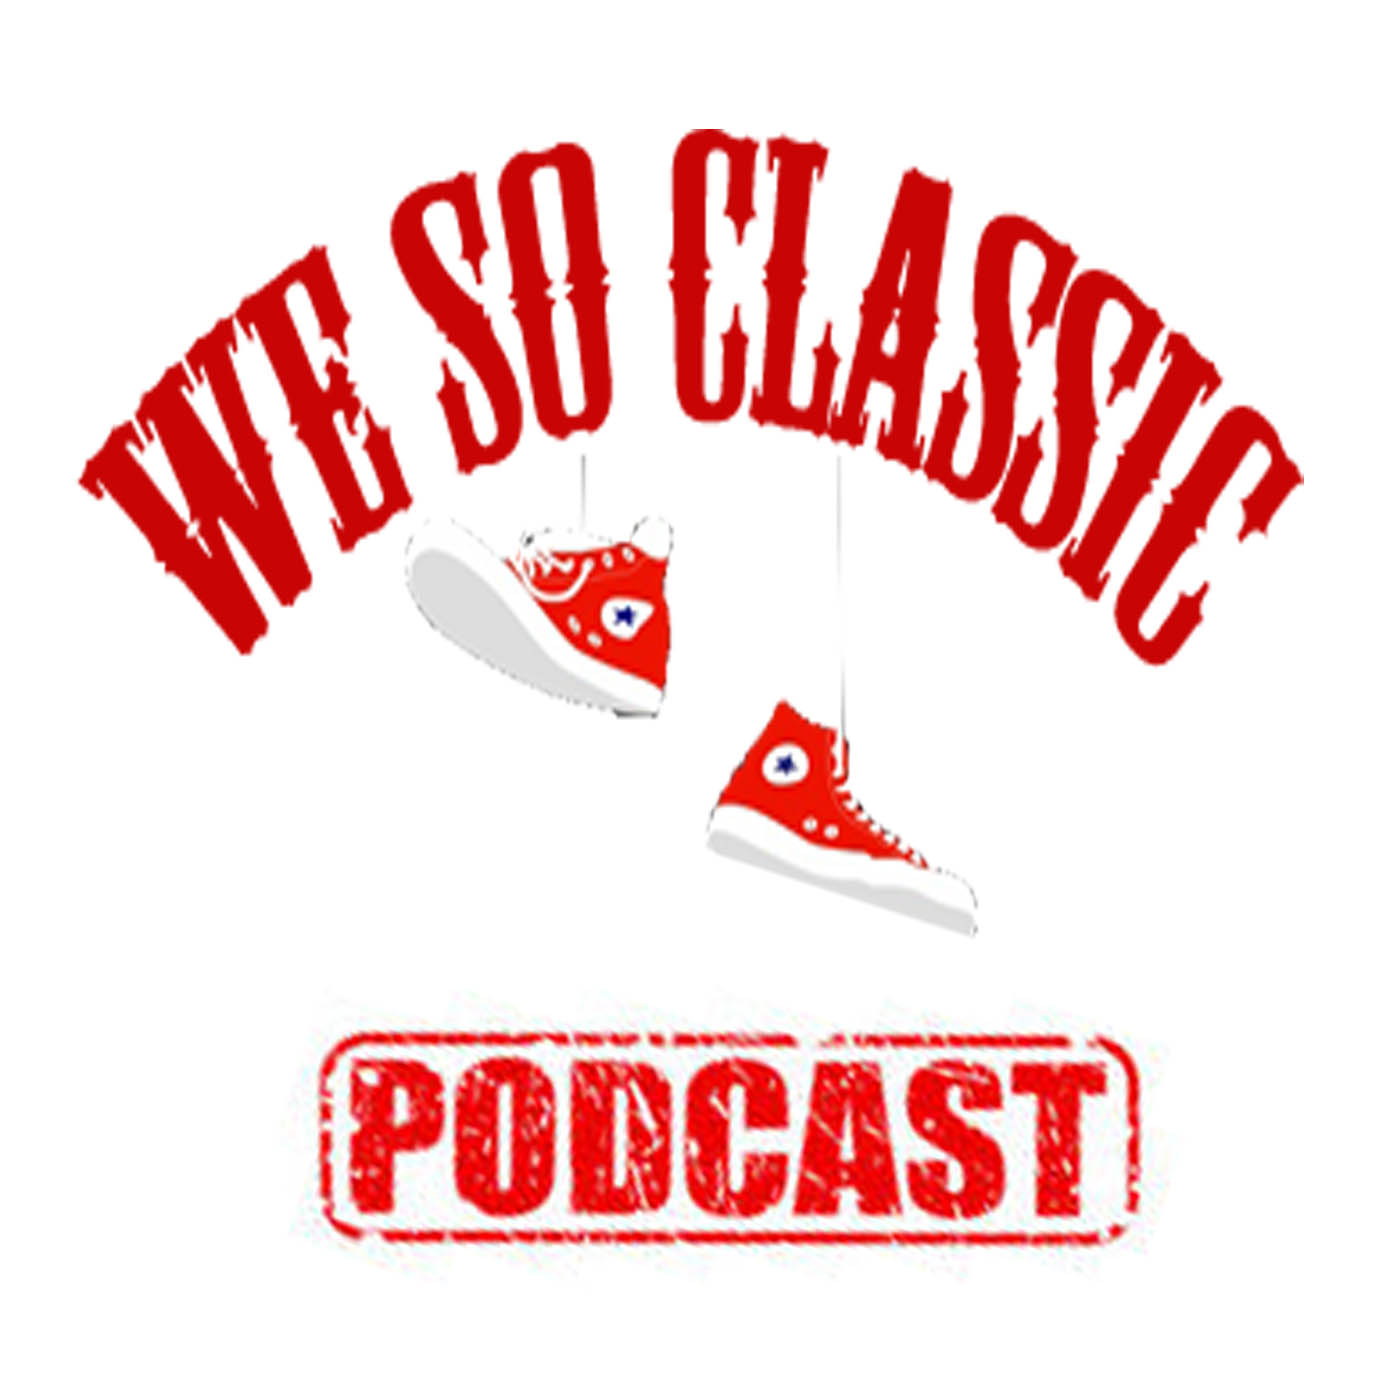 We So Classic Podcast - We So classic